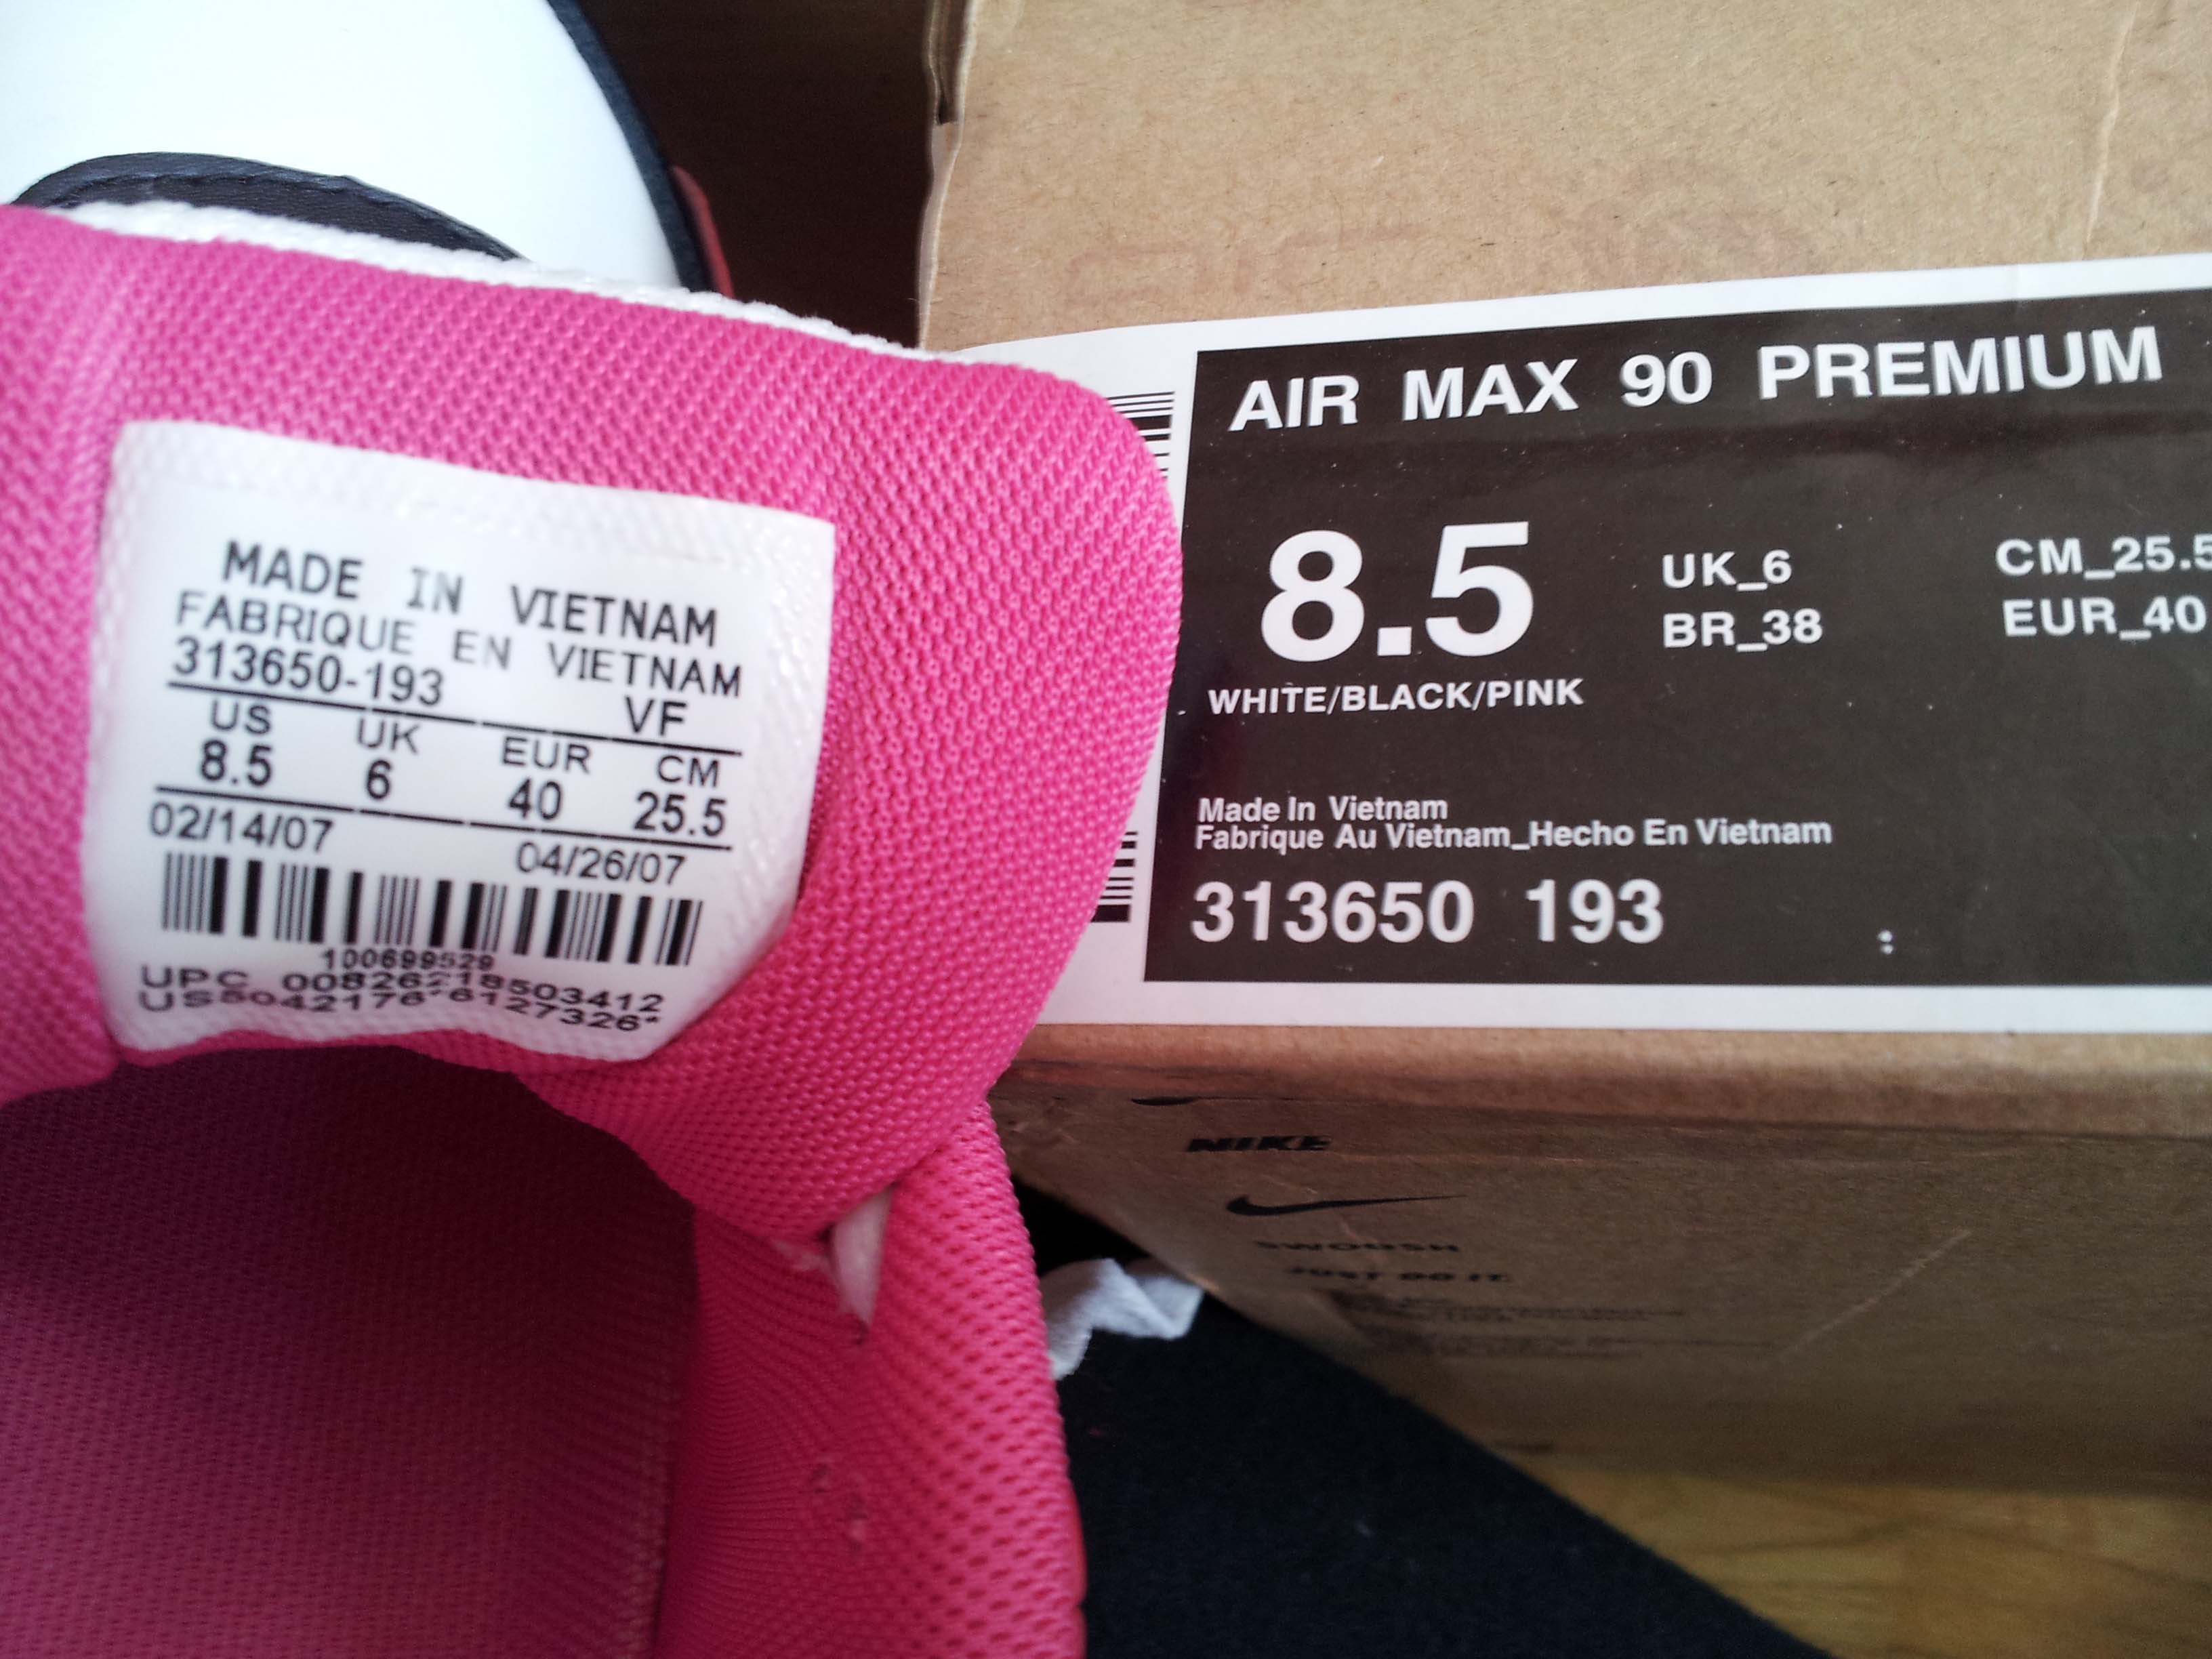 air max 90 made in vietnam